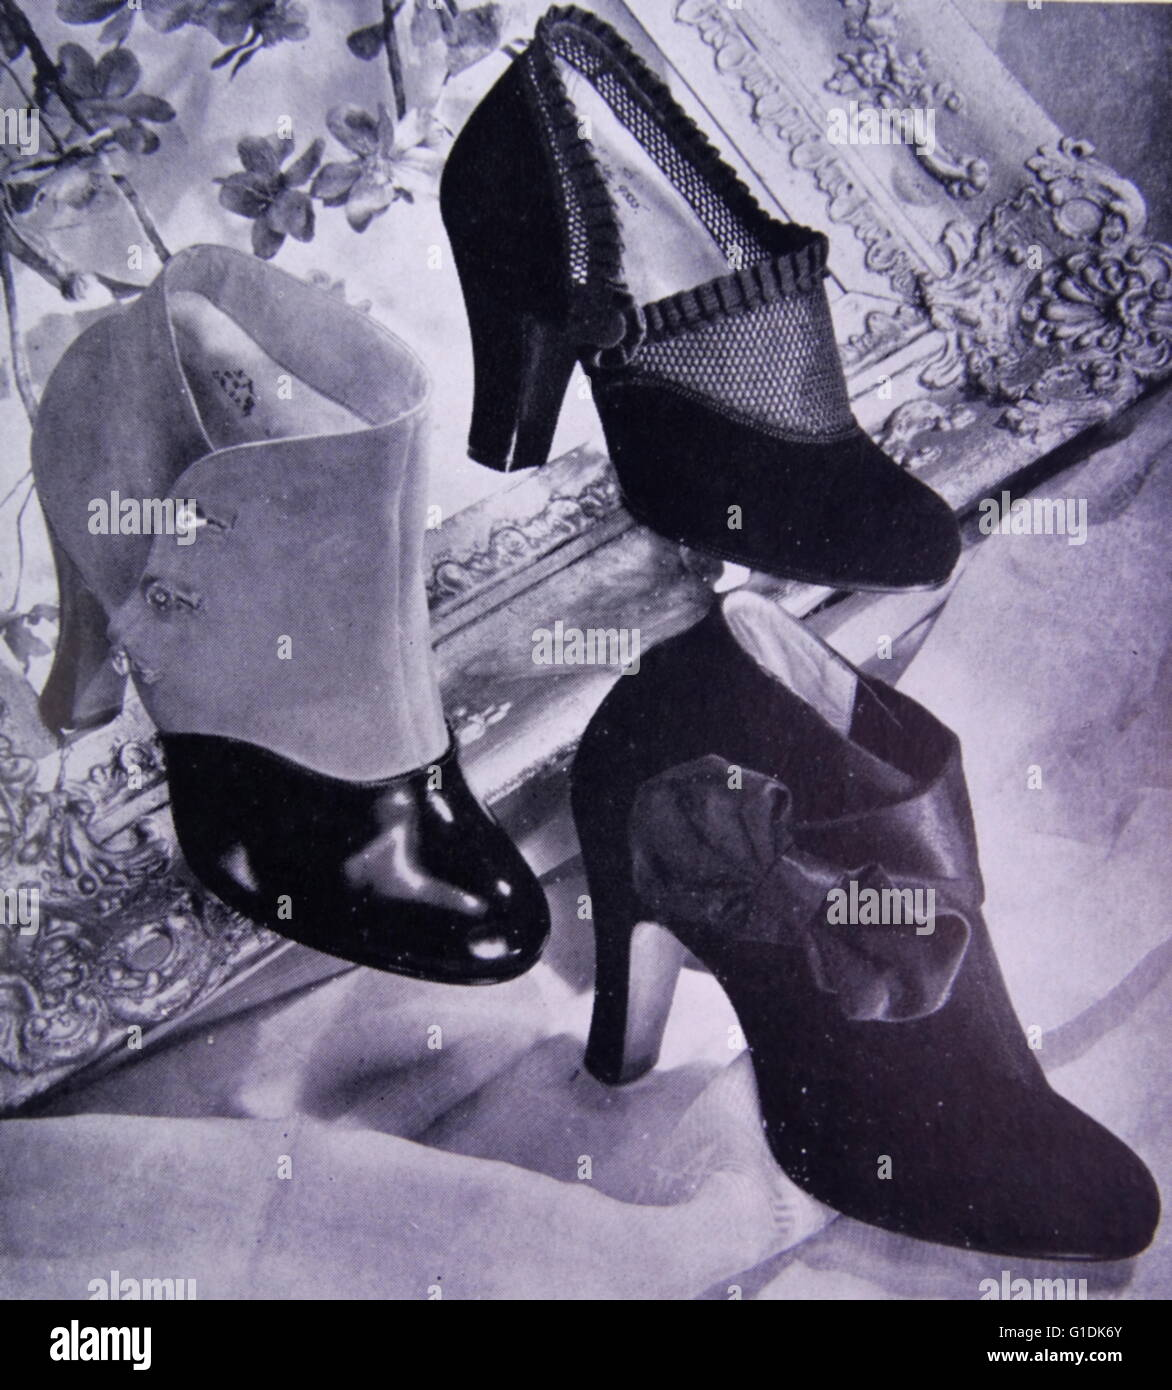 Advert for new elegant shoes by Rayne, a British manufacturer known for high-end and couture shoes. Founded in 1899 Stock Photo